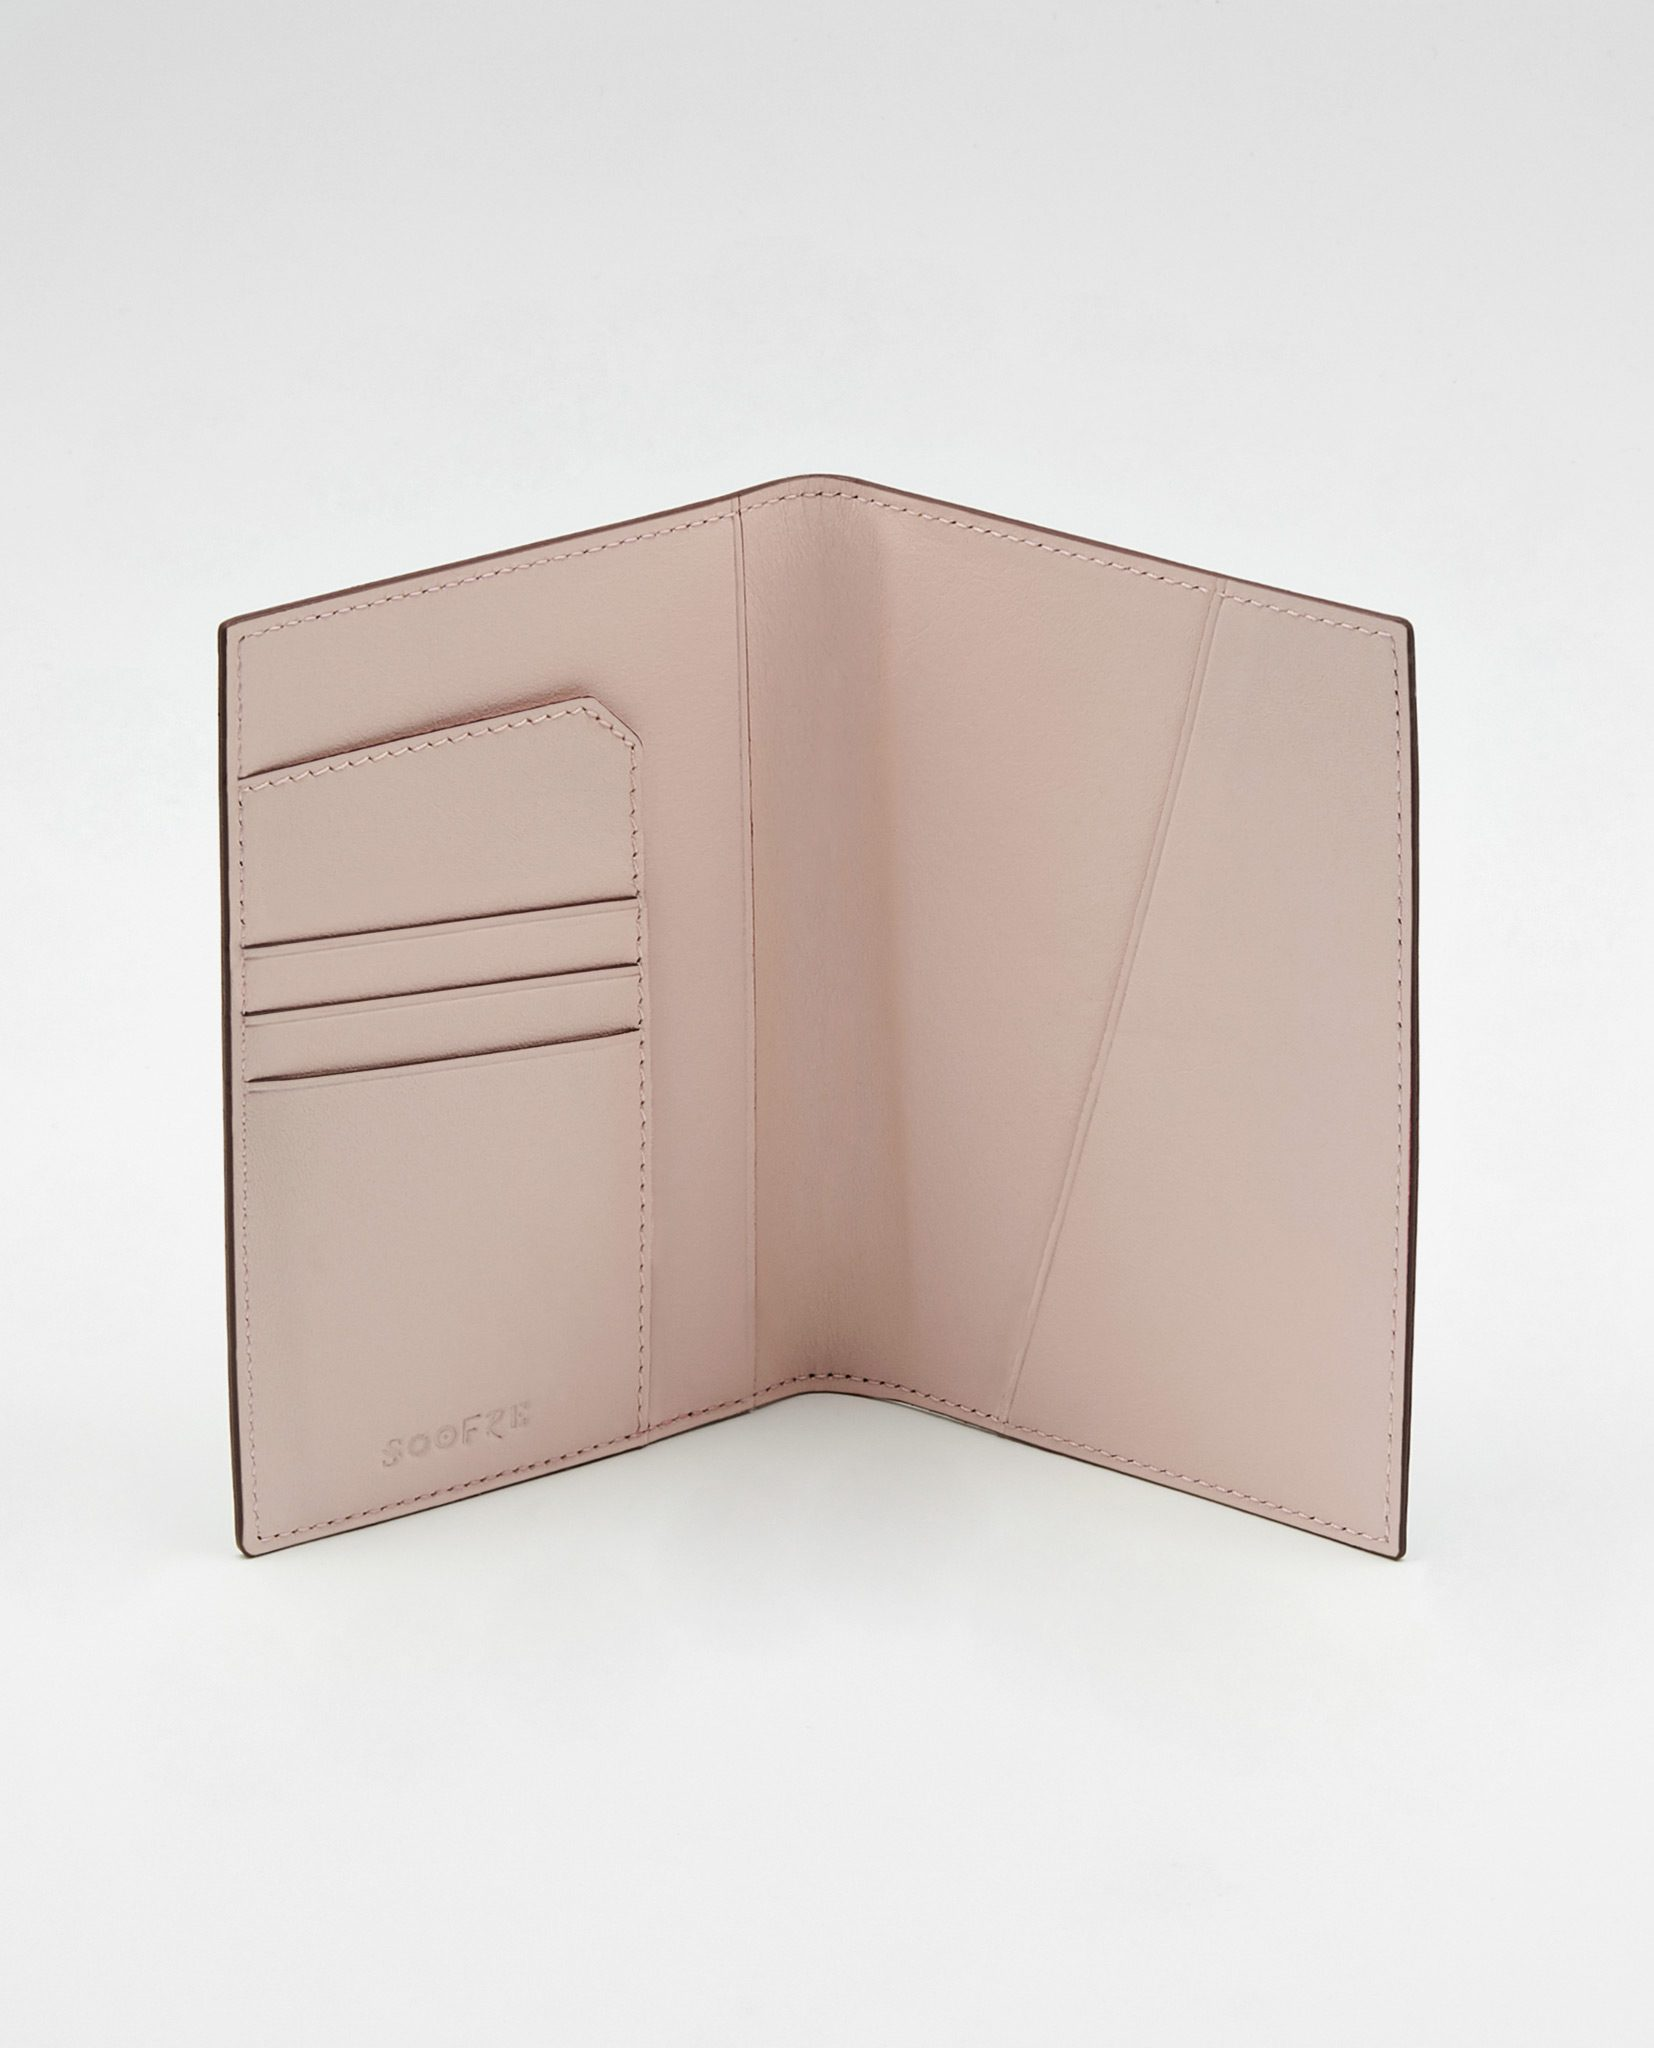 Soofre_Passport-Holder_Burgundy-Blush-2